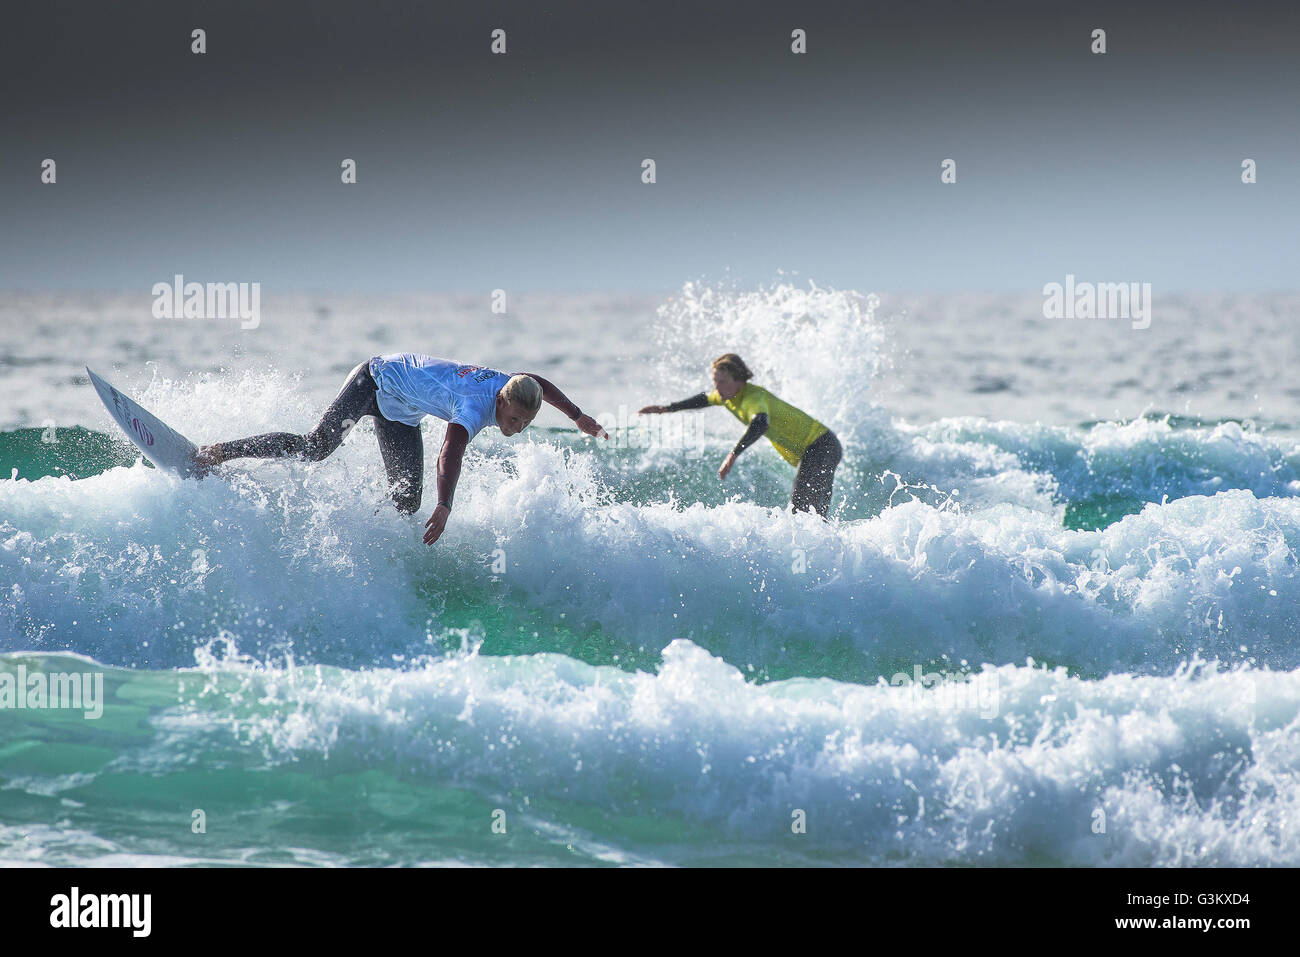 Surfers in spectacular action as they participate in a UK Pro Surf Tour competition at Fistral in Newquay, Cornwall. - Stock Image